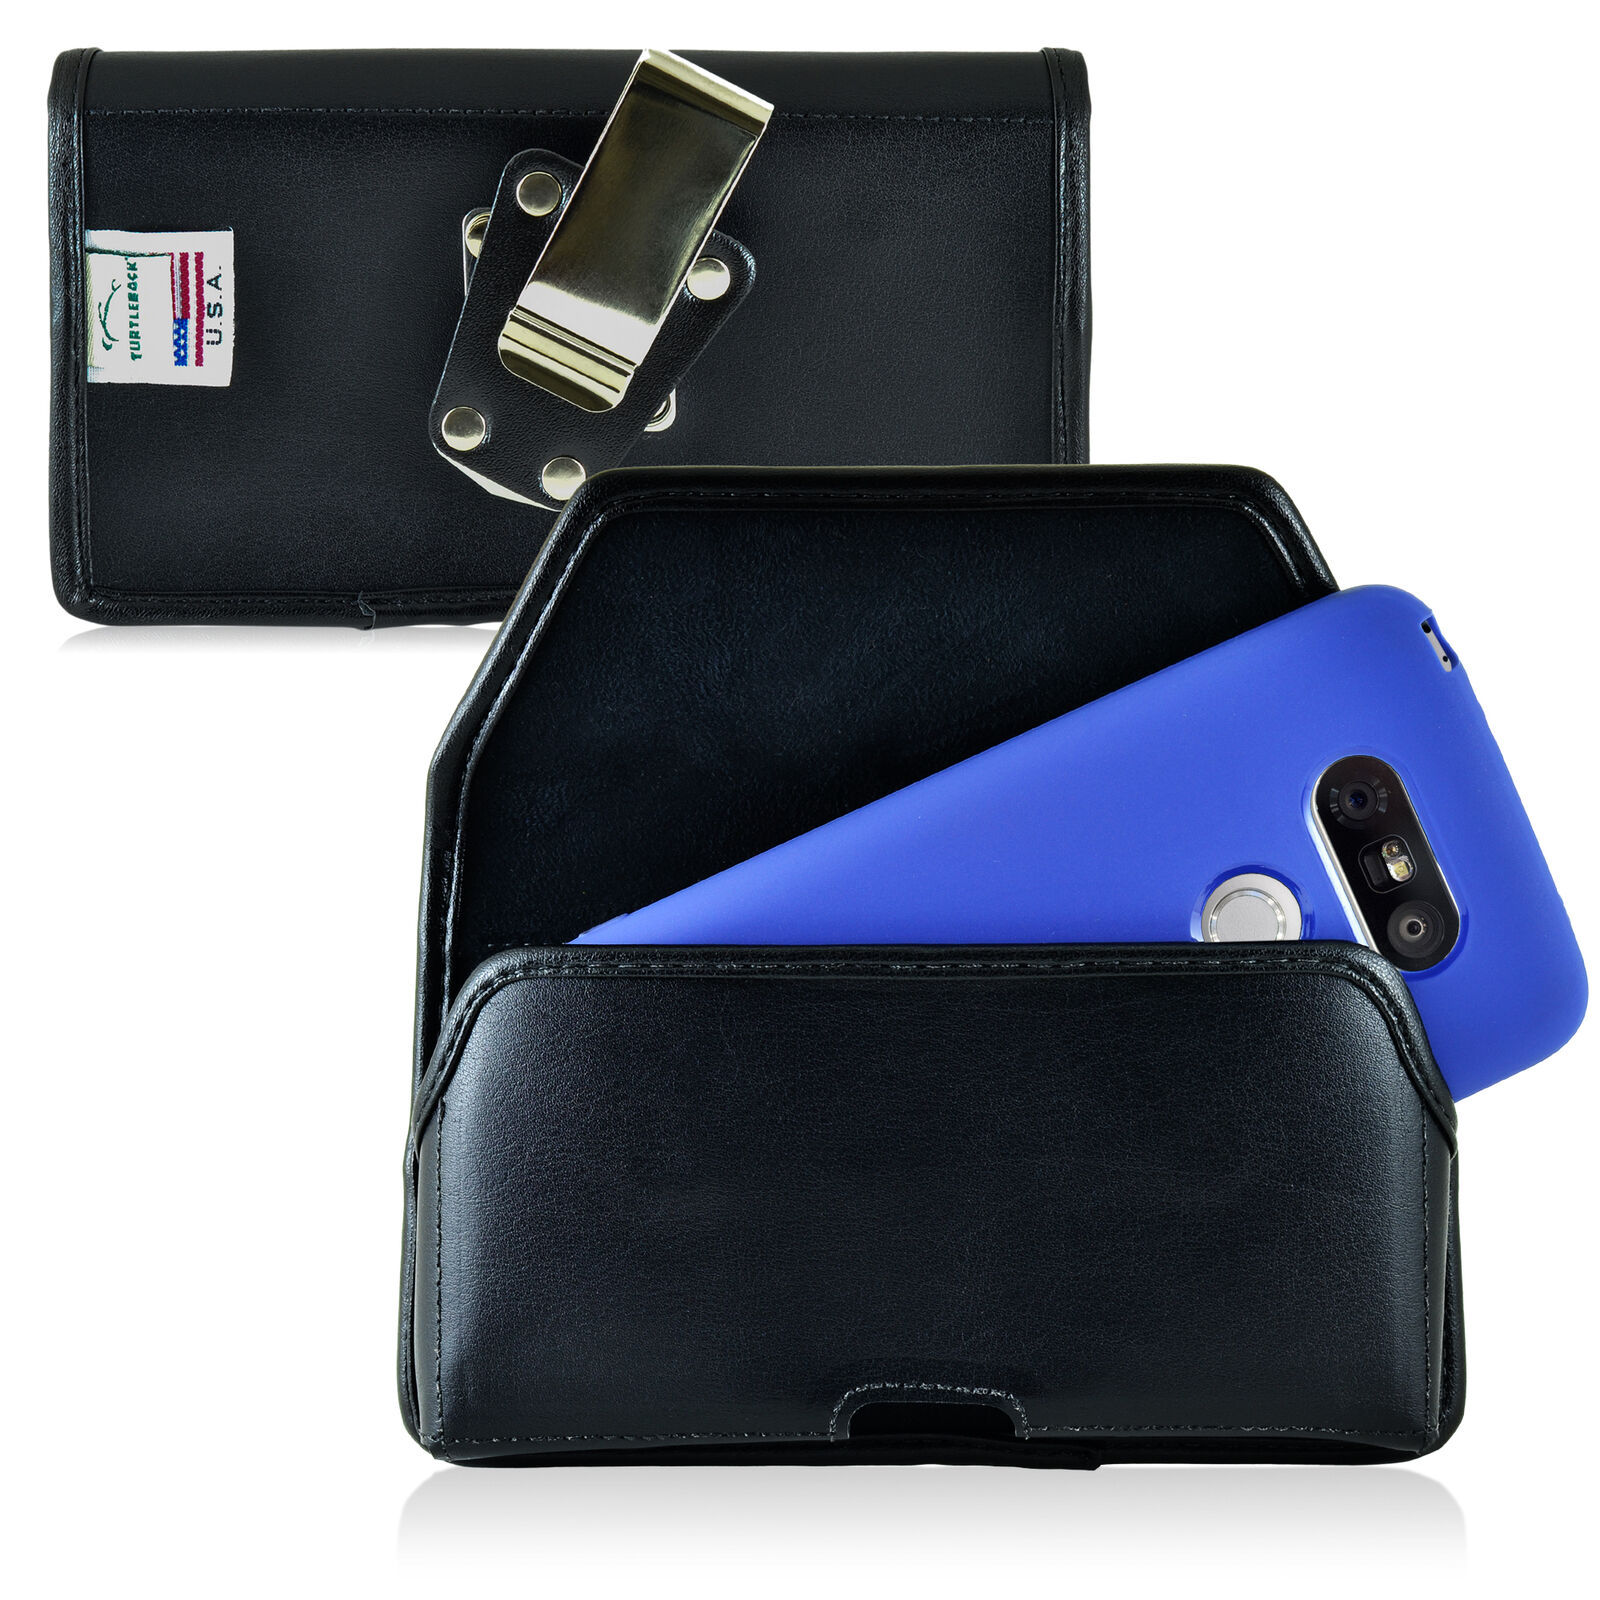 turtleback-lg-g5-leather-black-pouch-holster-cell-phone-case-metal-belt-clip